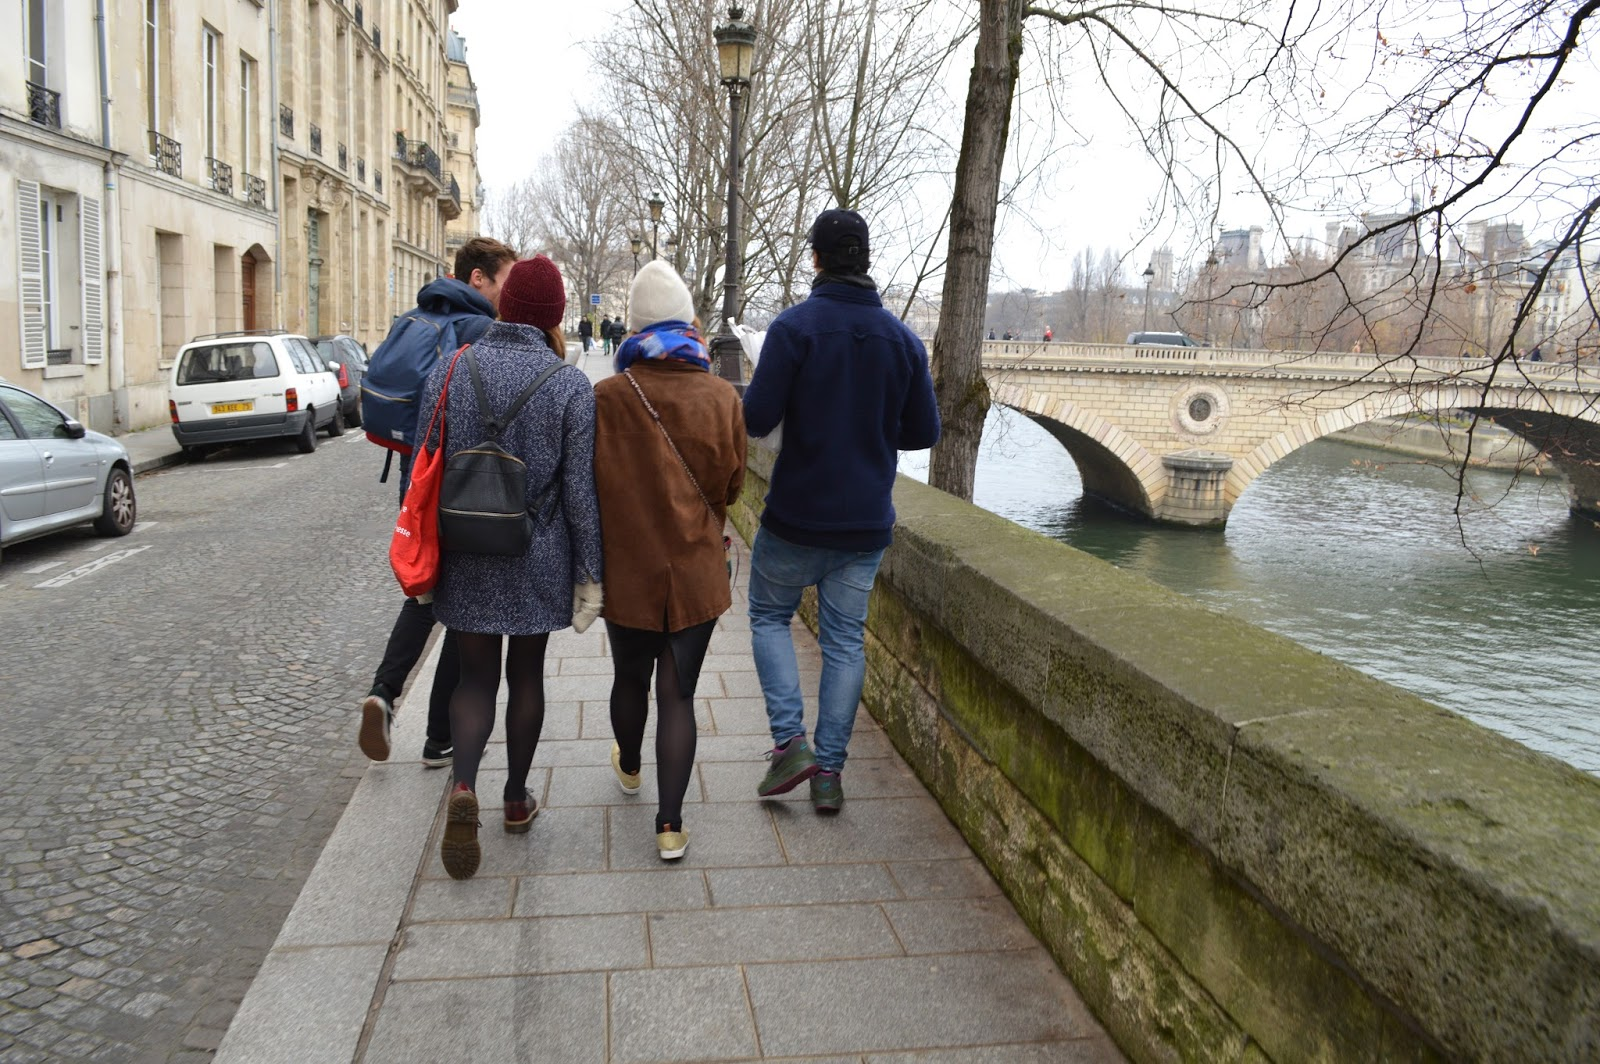 What do to for a weekend in Paris